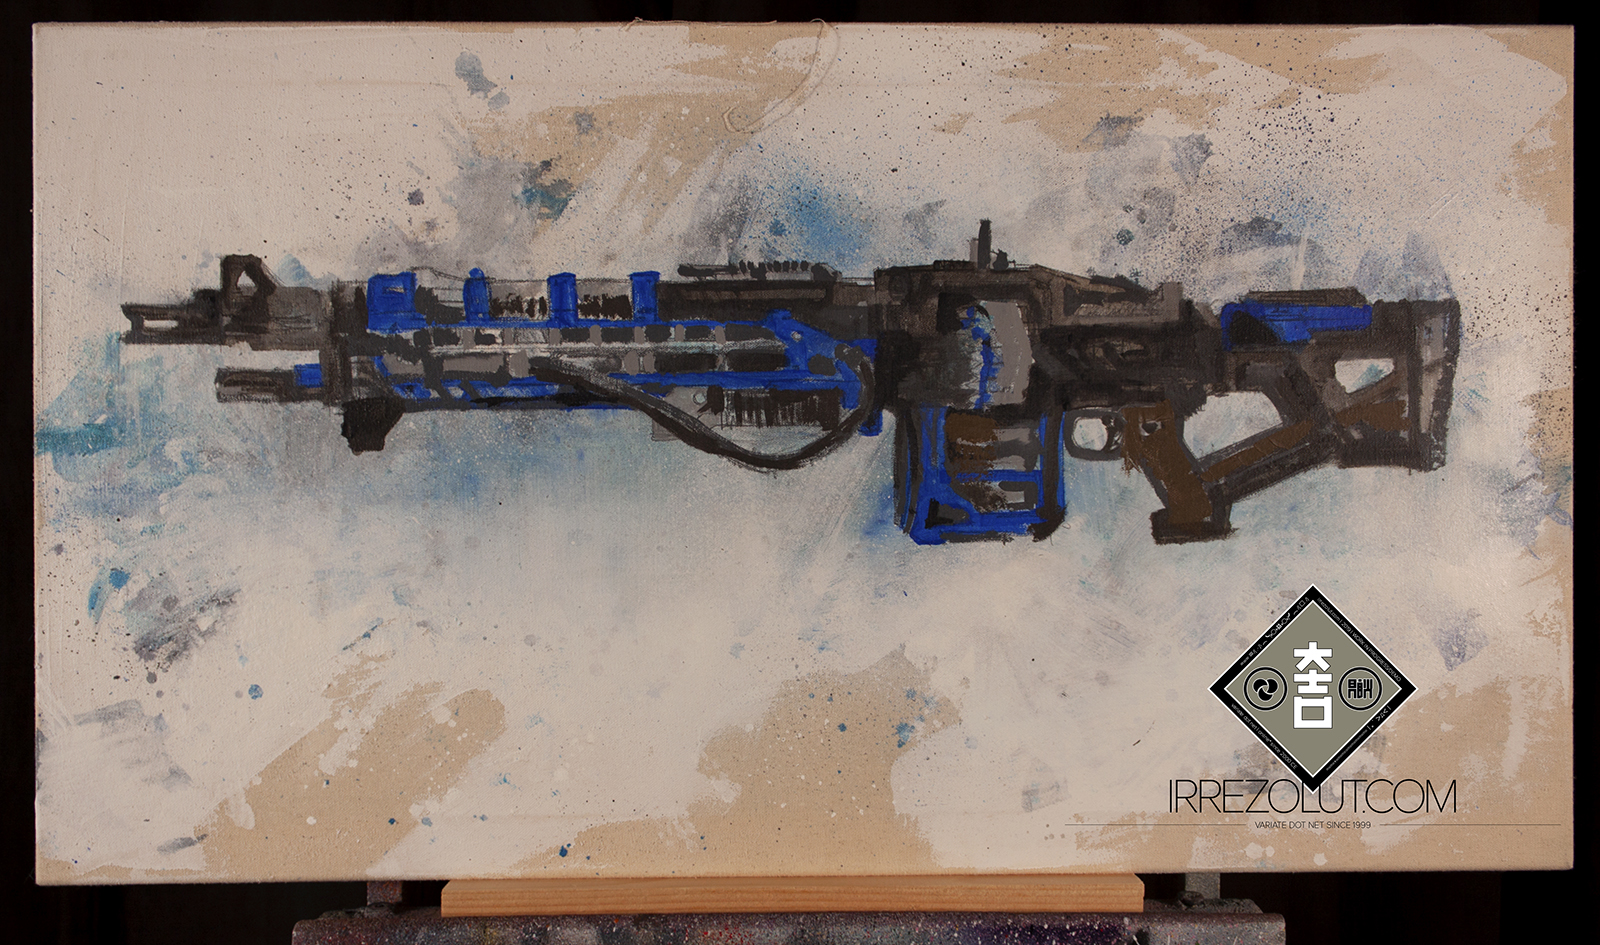 Thunderlord (WIP - June 5 2019) - few layers added - base layers/colors defined